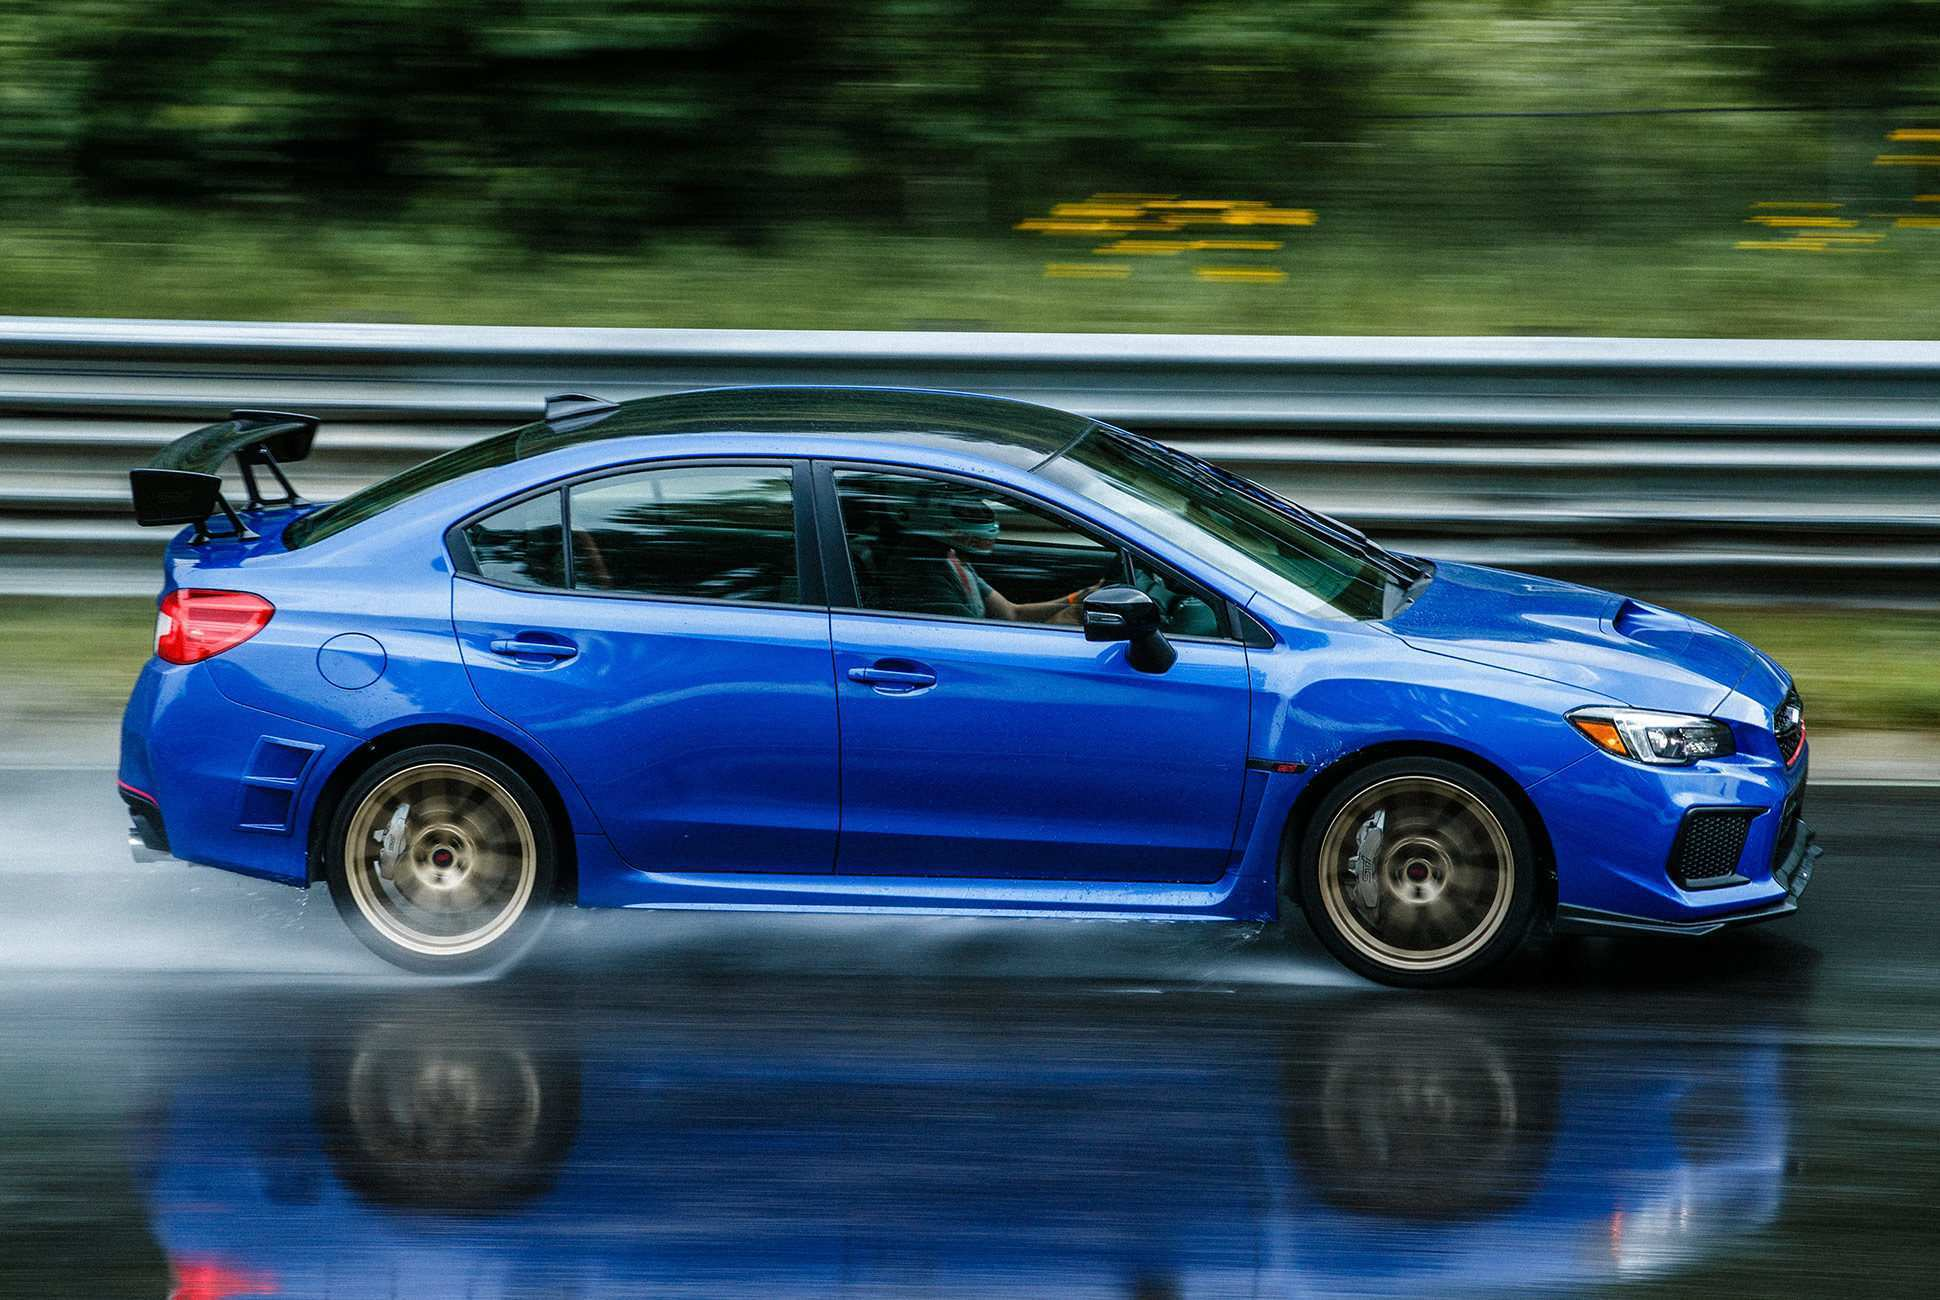 39 Great The 2019 Subaru Wrx Quarter Mile Price And Review Review by The 2019 Subaru Wrx Quarter Mile Price And Review